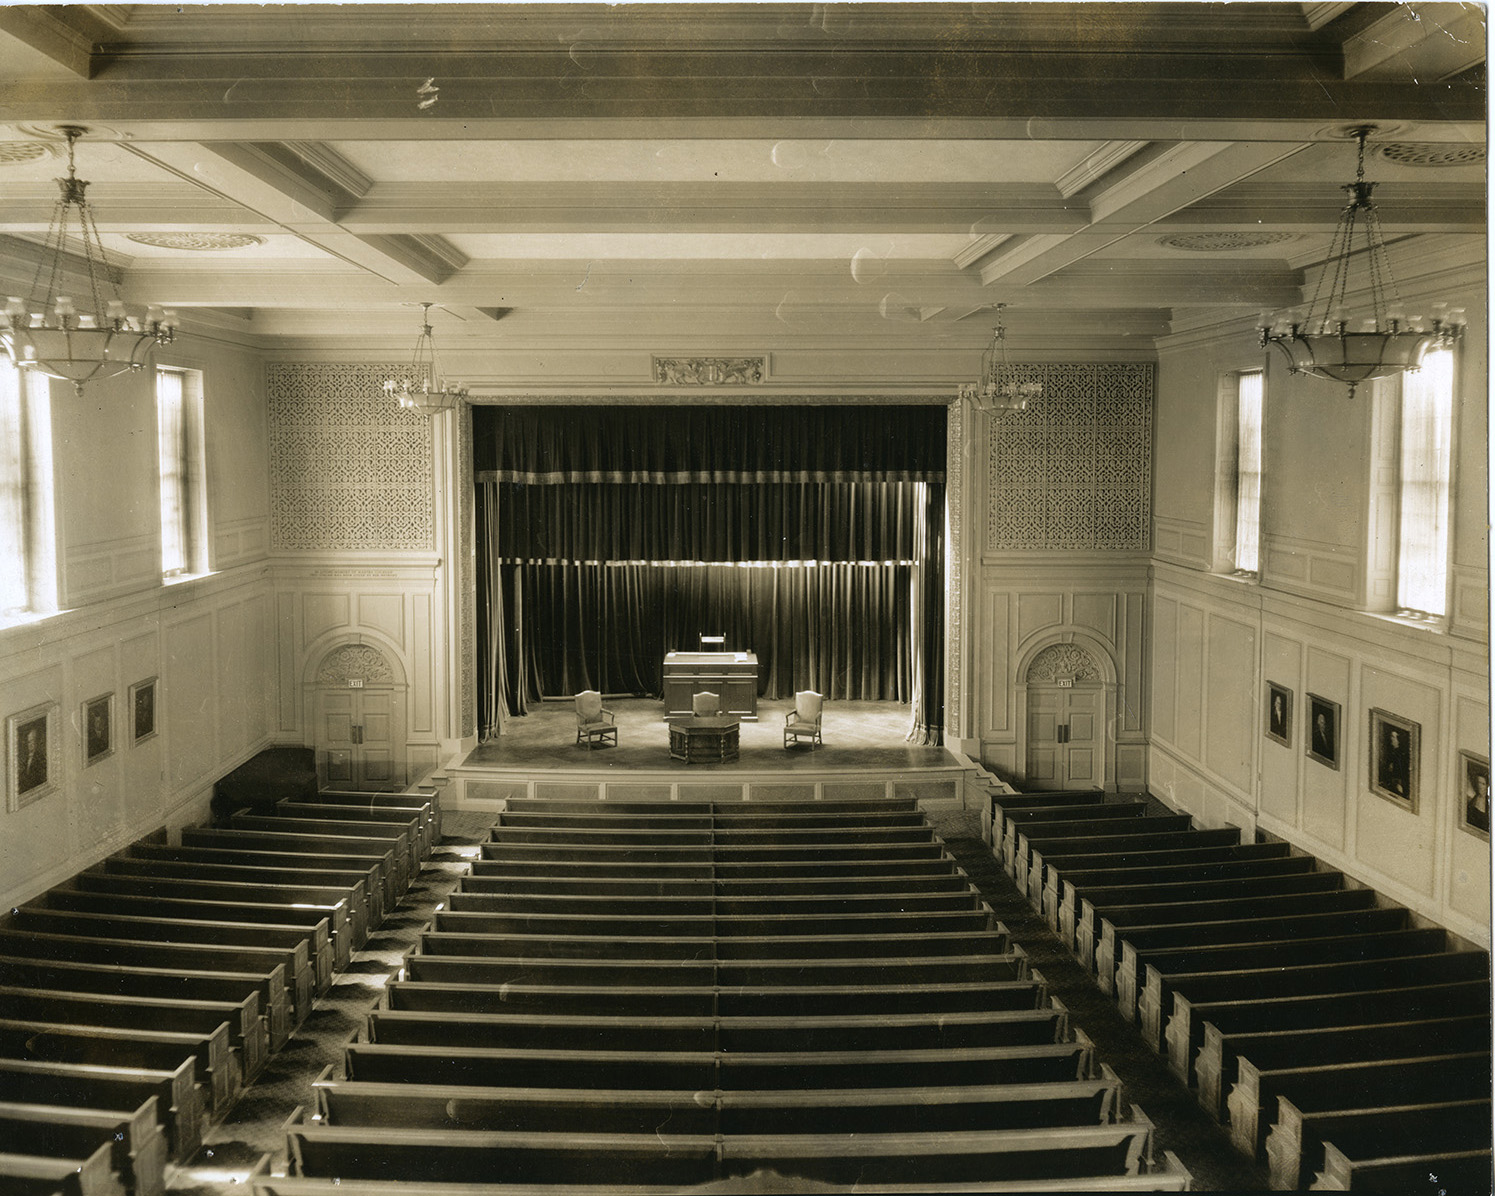 George Washington Hall interior, 1927. Photograph by Peter A. Juley and son.